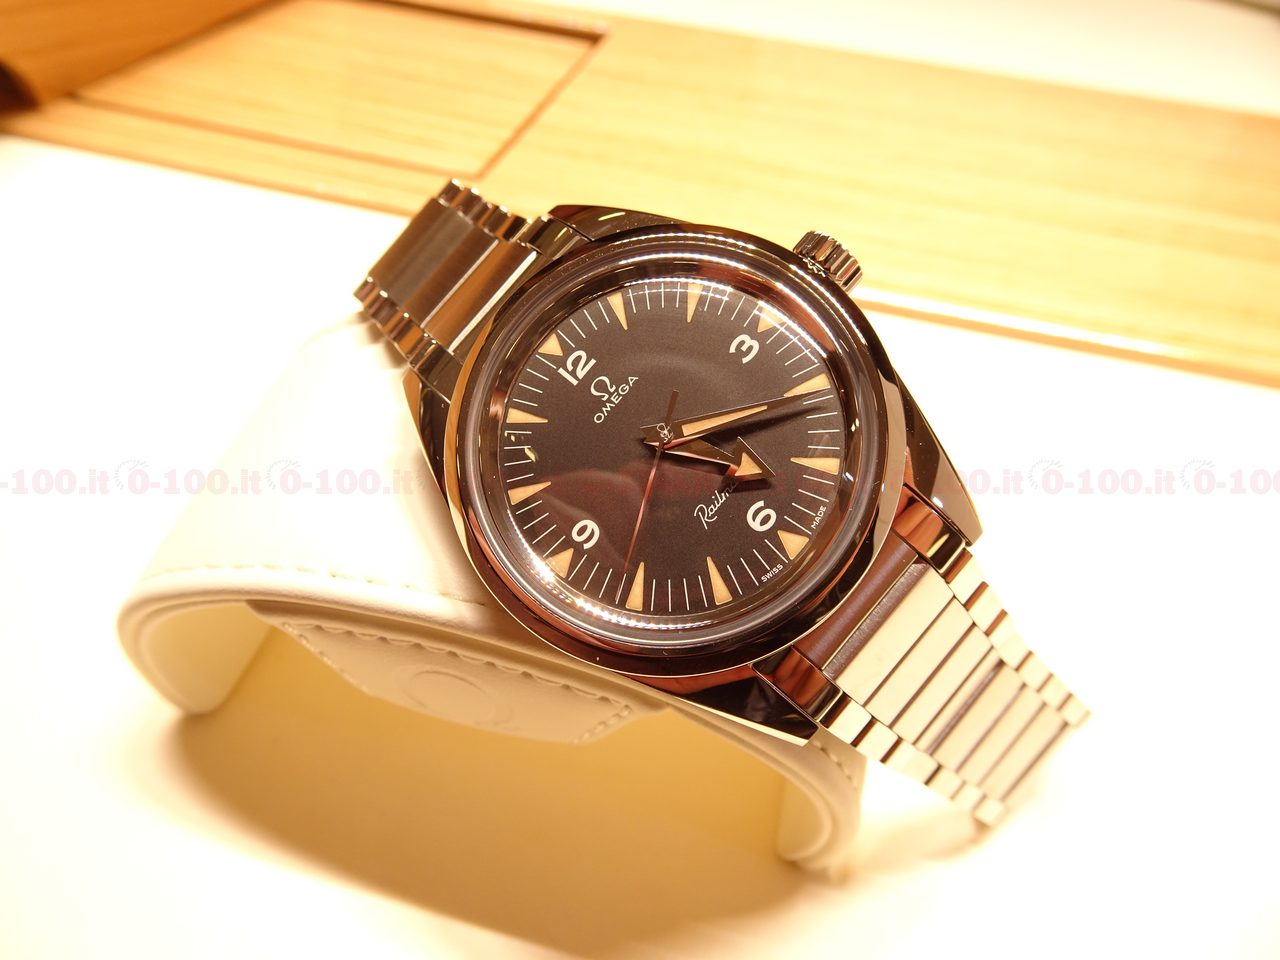 Omega Railmaster -60th Anniversary Limited Edition - Master Chronometer 38 mm_0-1004